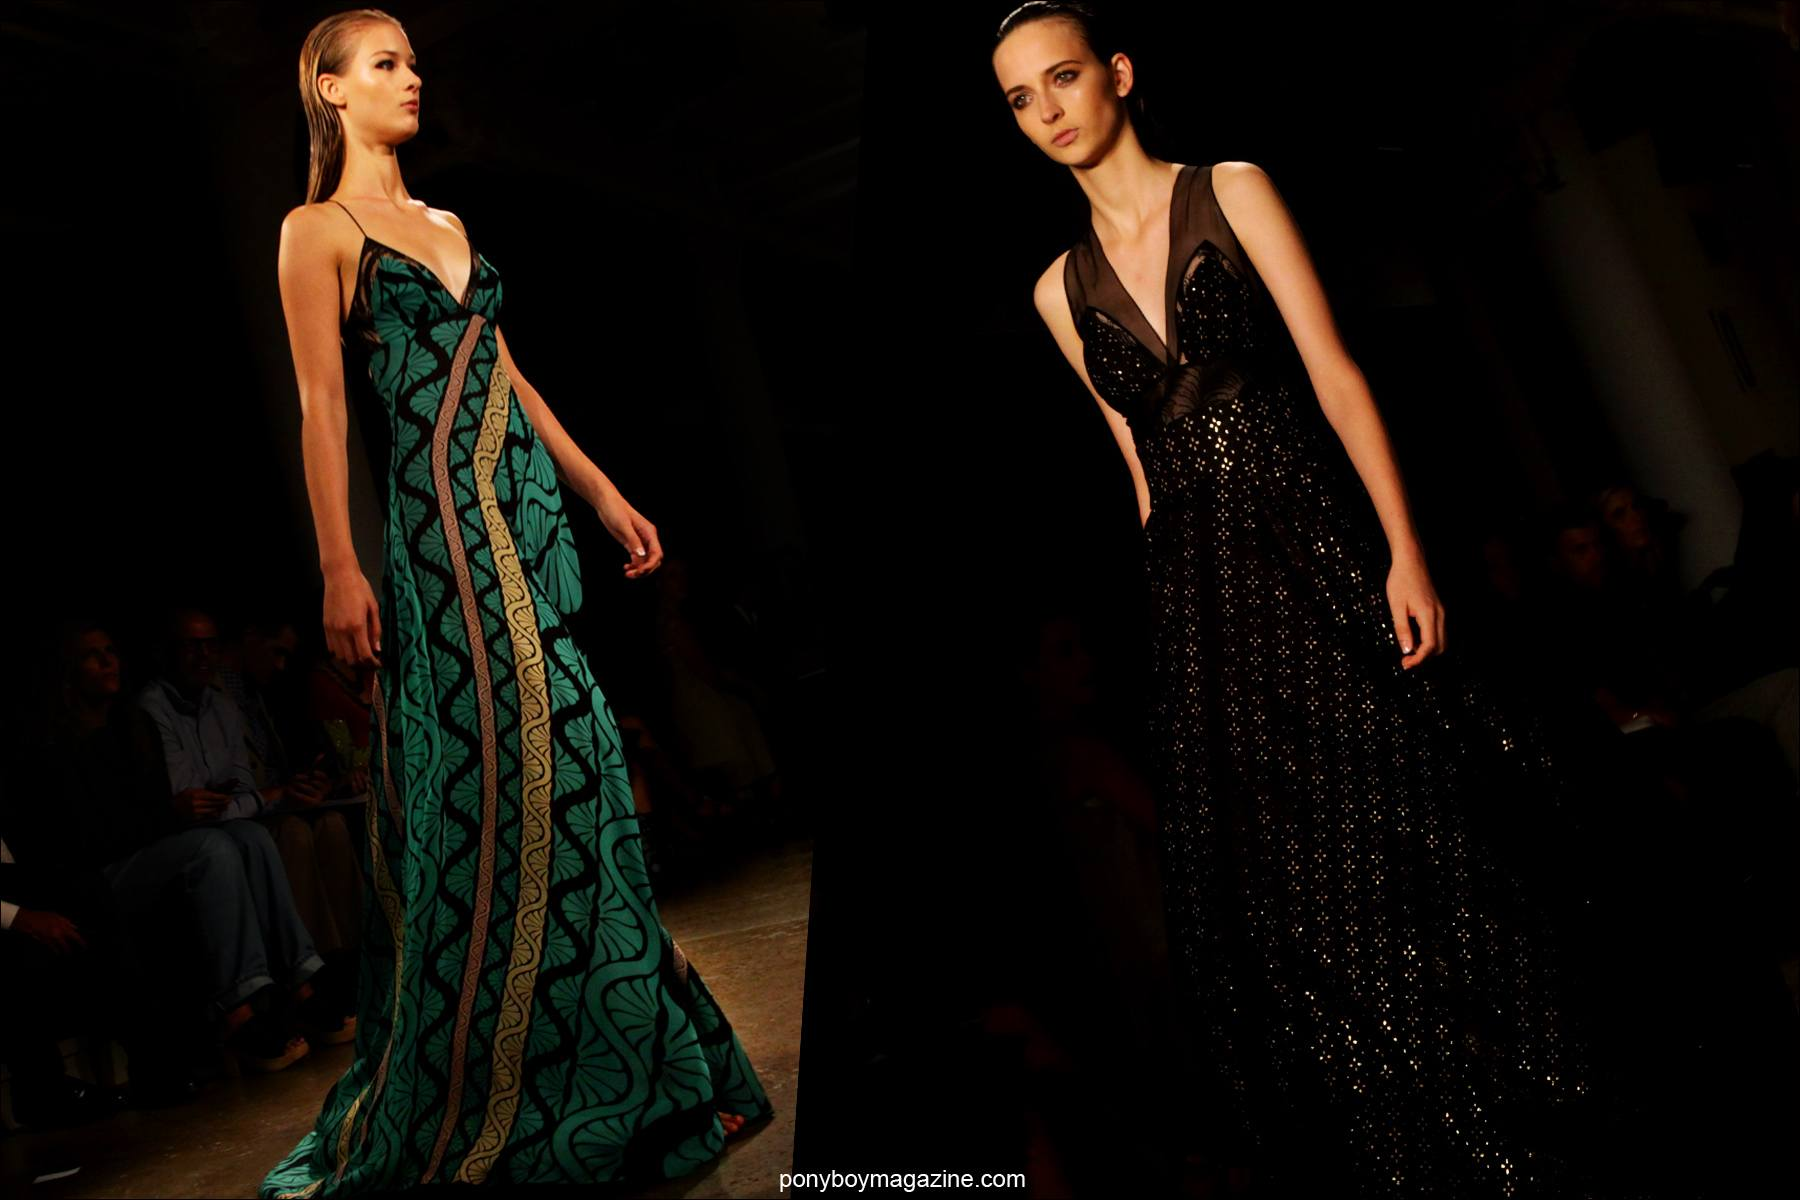 Gowns from Sophie Theallet Spring/Summer 2015 runway show in New York City. Photos by Alexander Thompson for Ponyboy Magazine.